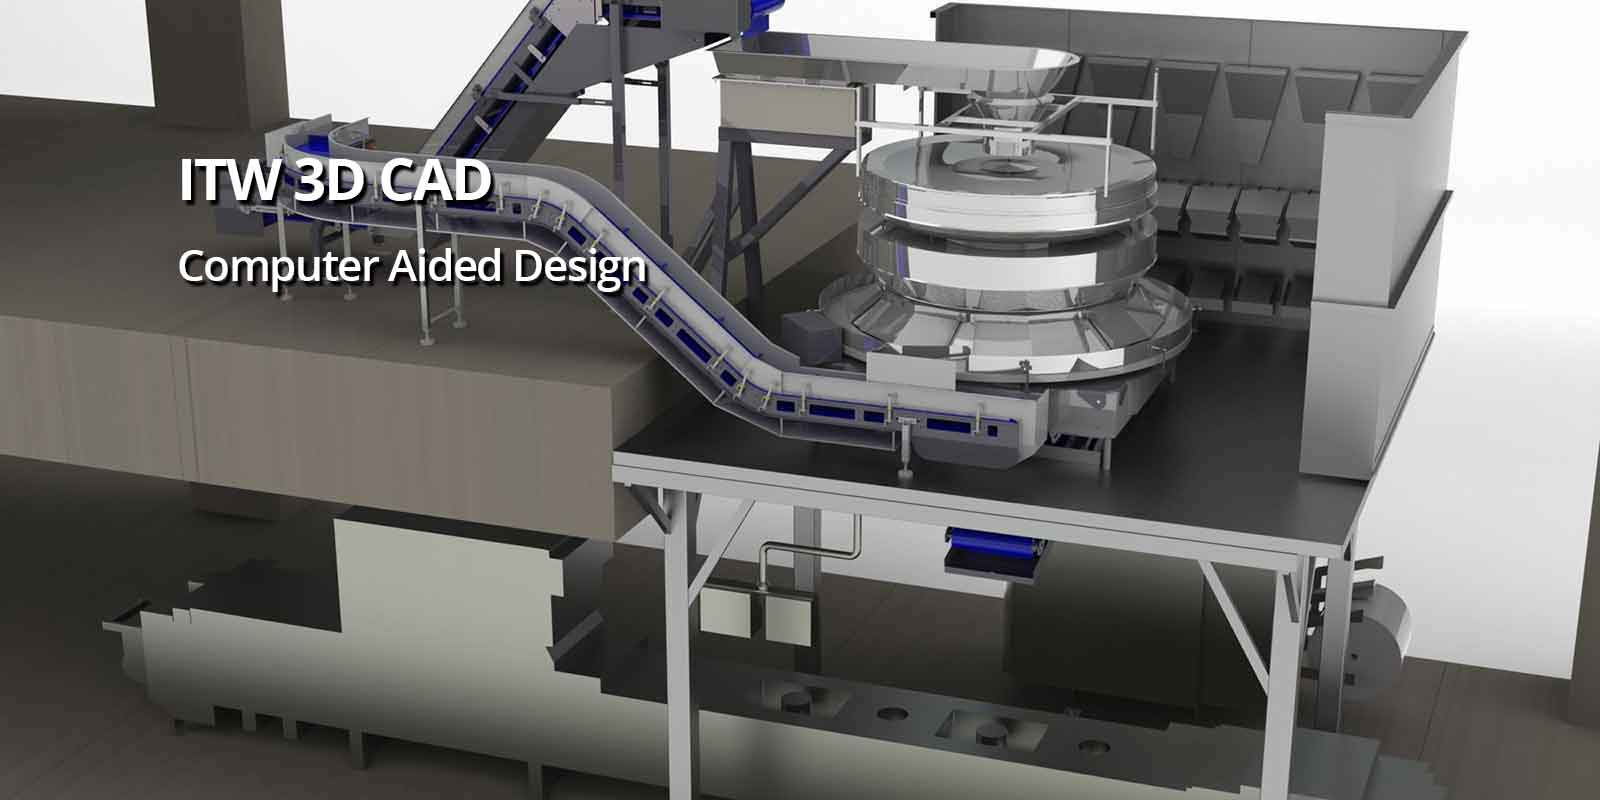 ITW 3D CAD _ Computer Aided Design